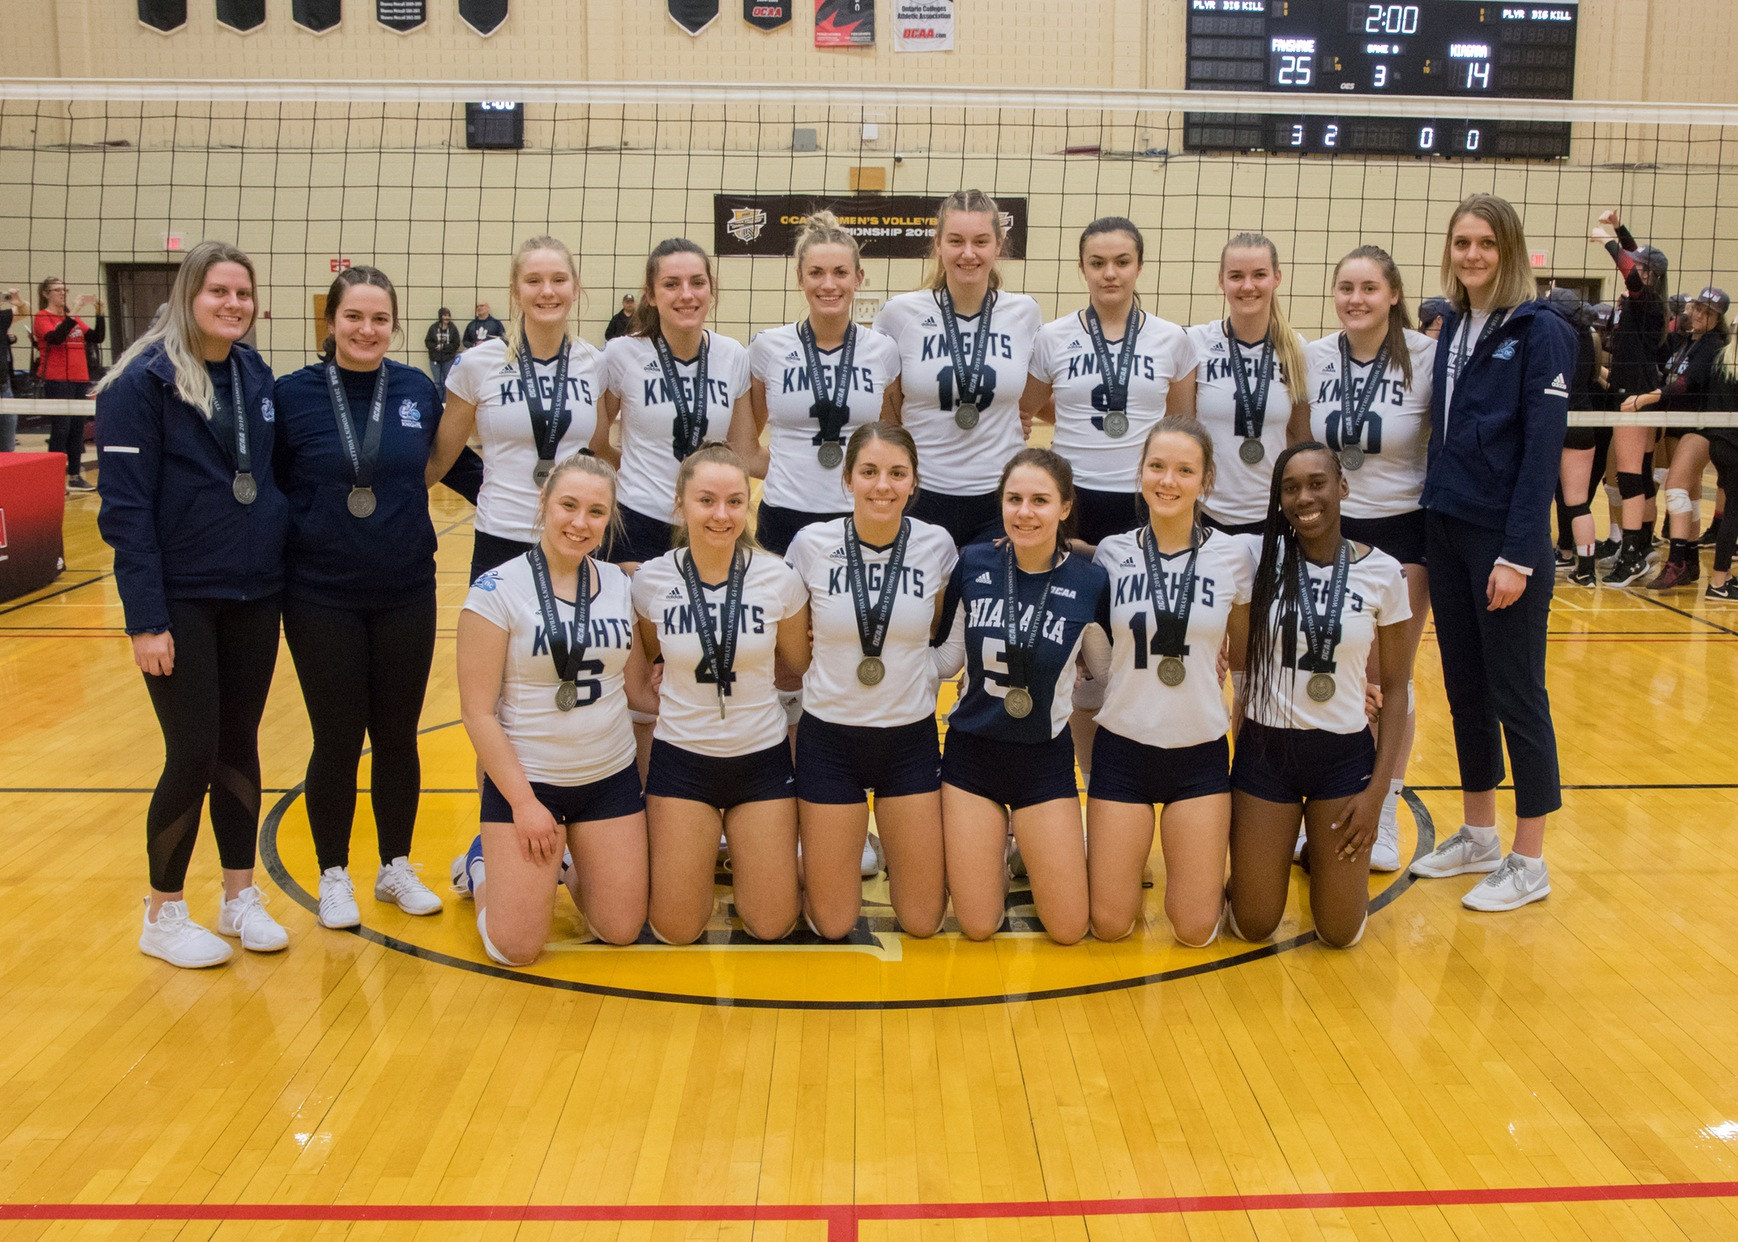 Spaling Steps Away from Women's Volleyball Program